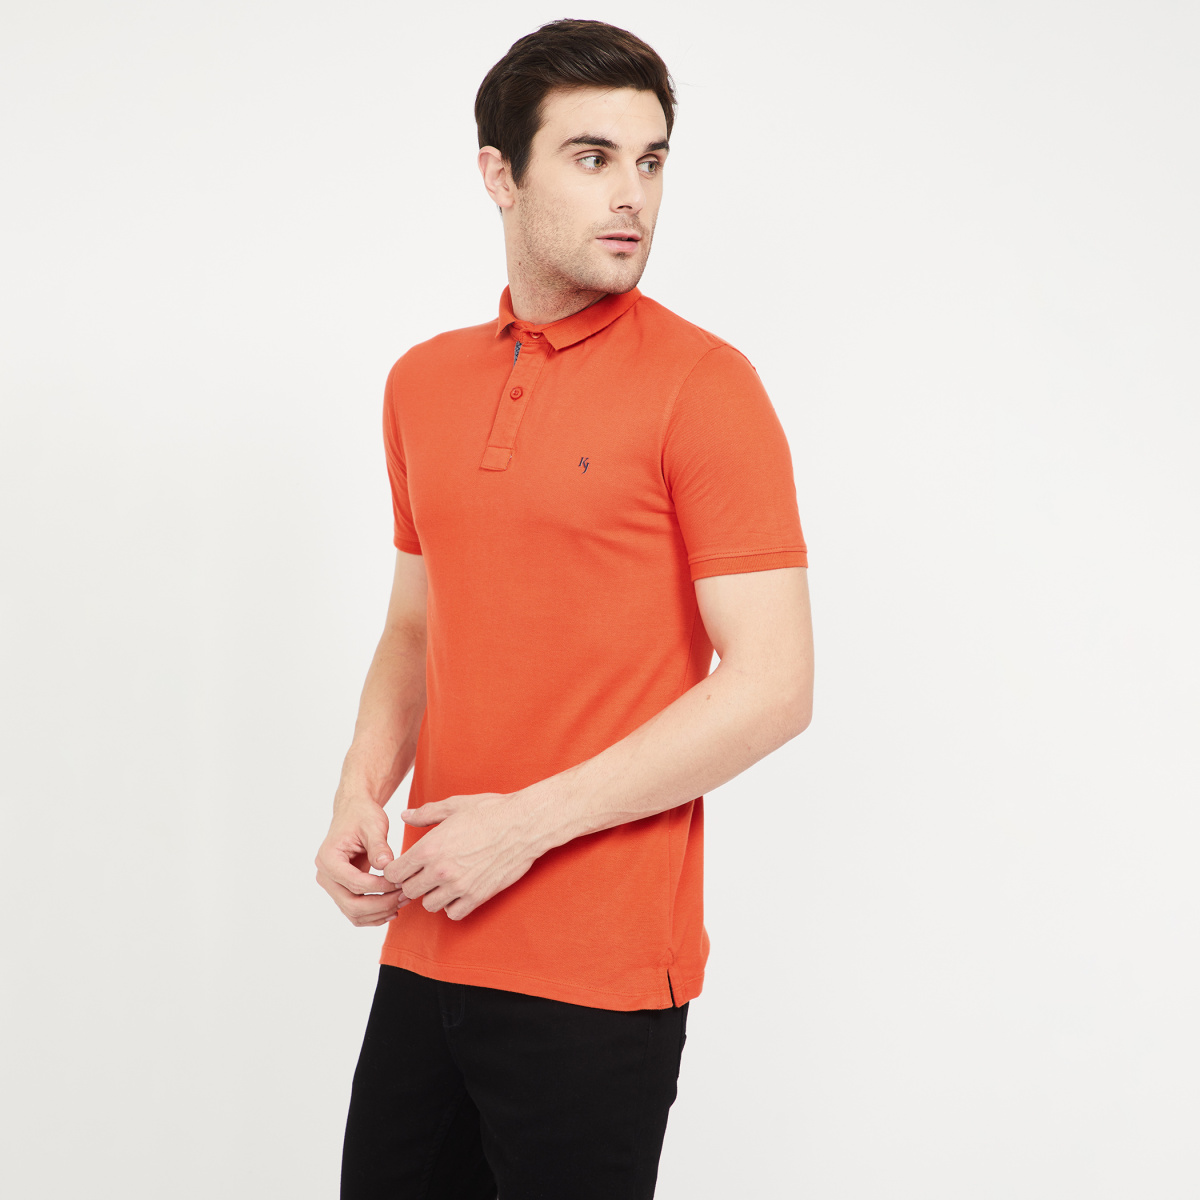 KILLER Solid Regular Fit Polo T-shirt